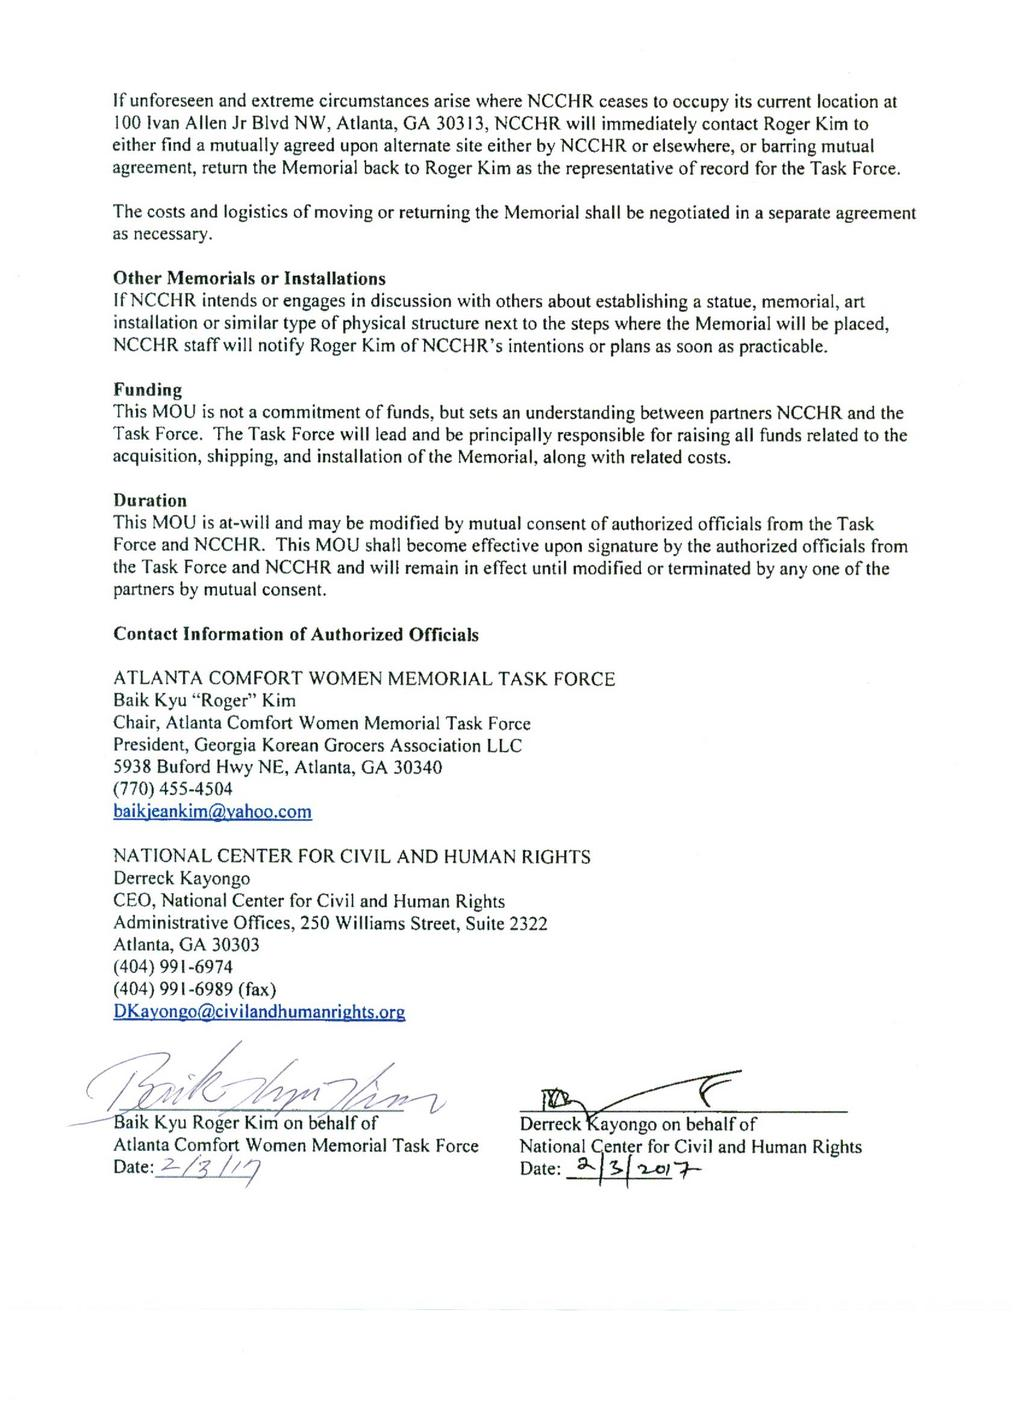 Center for civil and human rights says no to human trafficking to see the signature page of the memorandum of understanding between the center and the task force platinumwayz